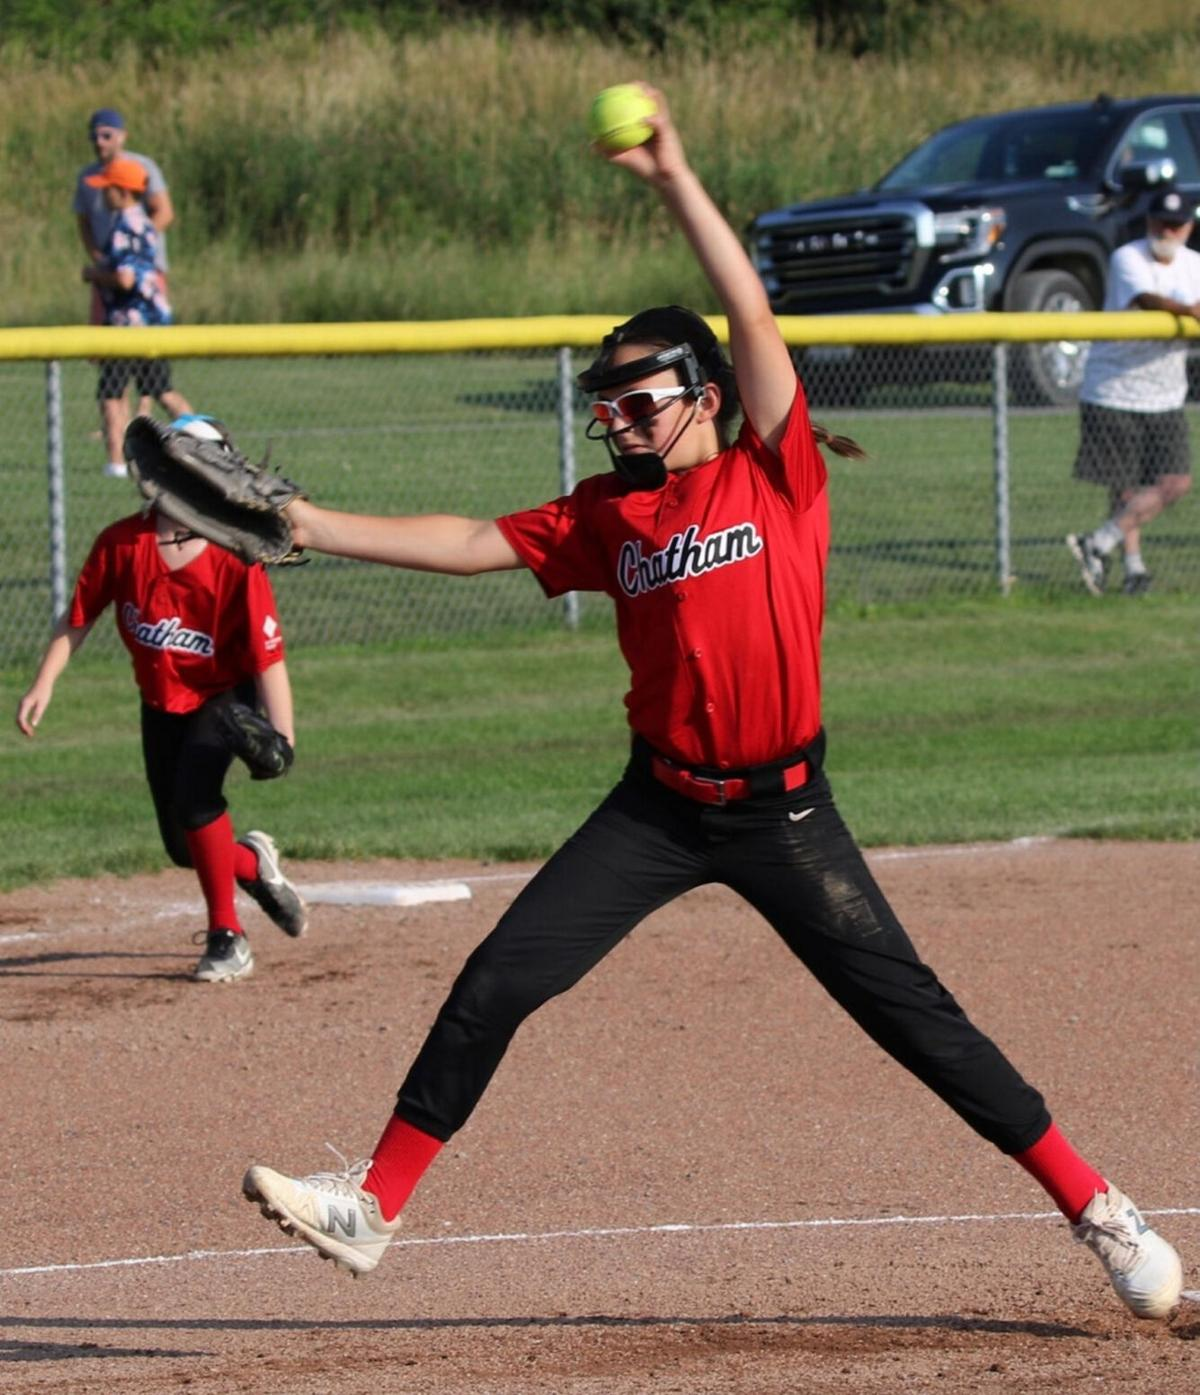 LOCAL SOFTBALL: Chatham 8-10s headed to state tournament